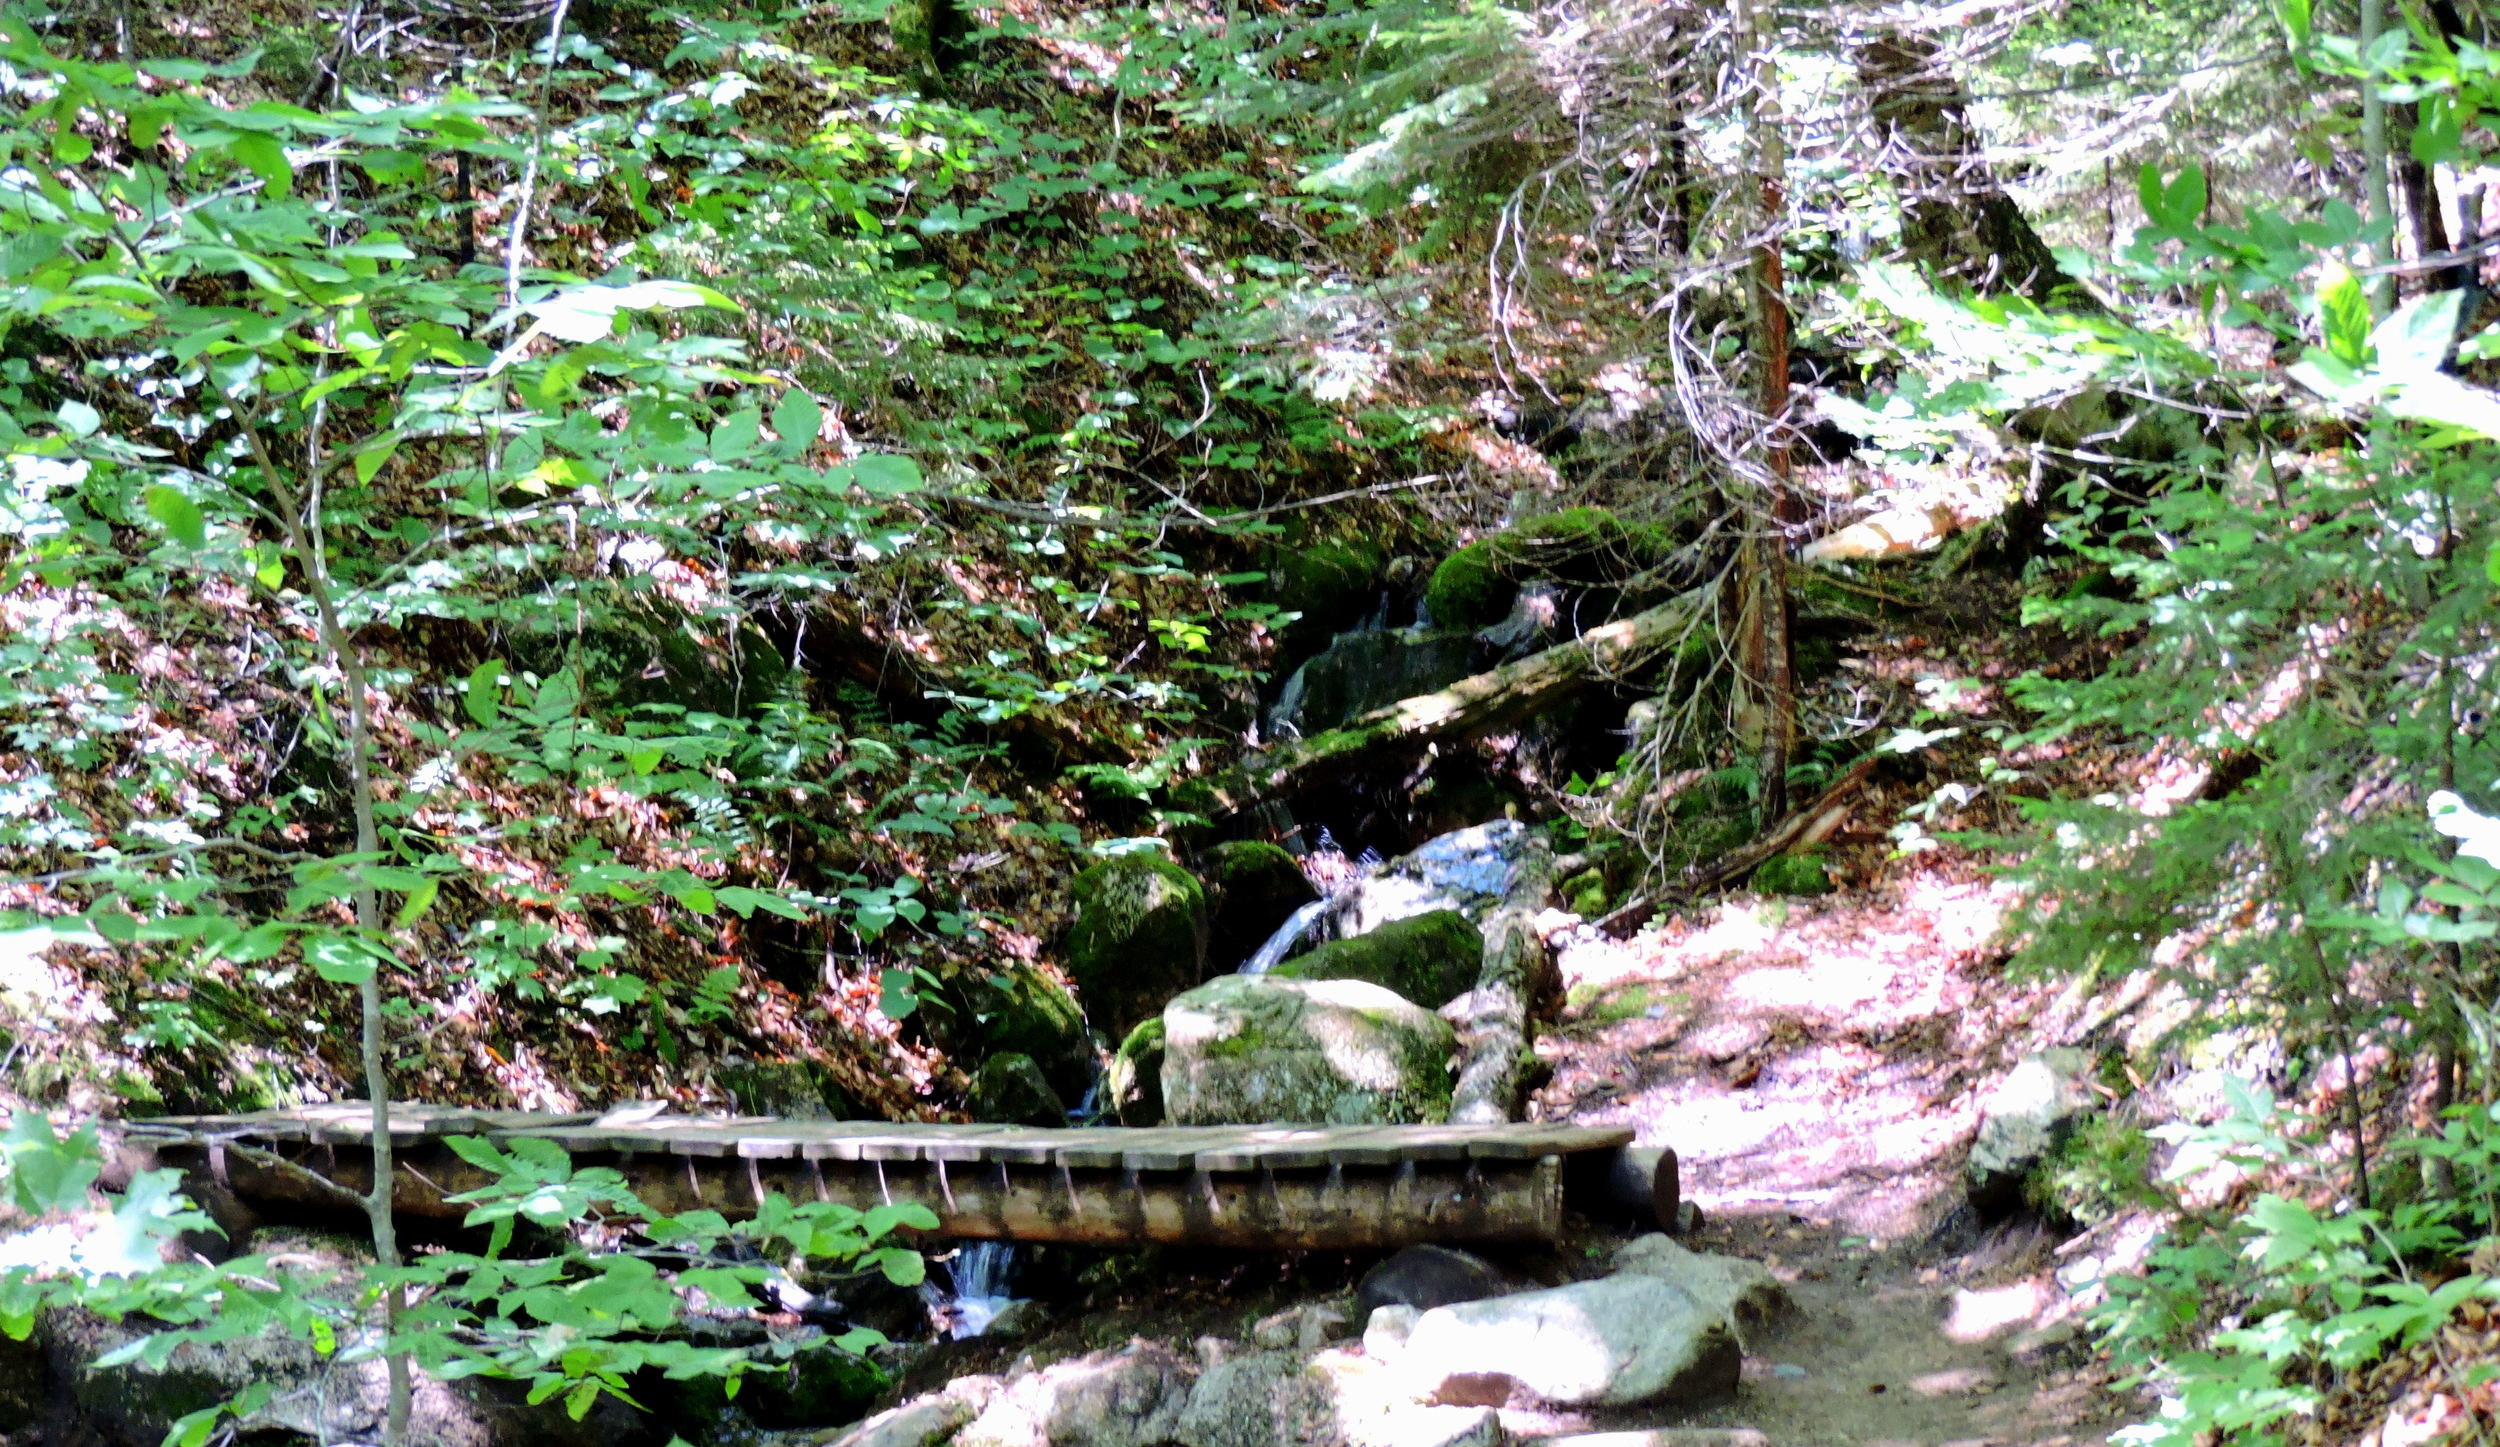 Wooden bridges are used in hiking trails to make it easier to climb over small creeks, streams, and muddy areas.